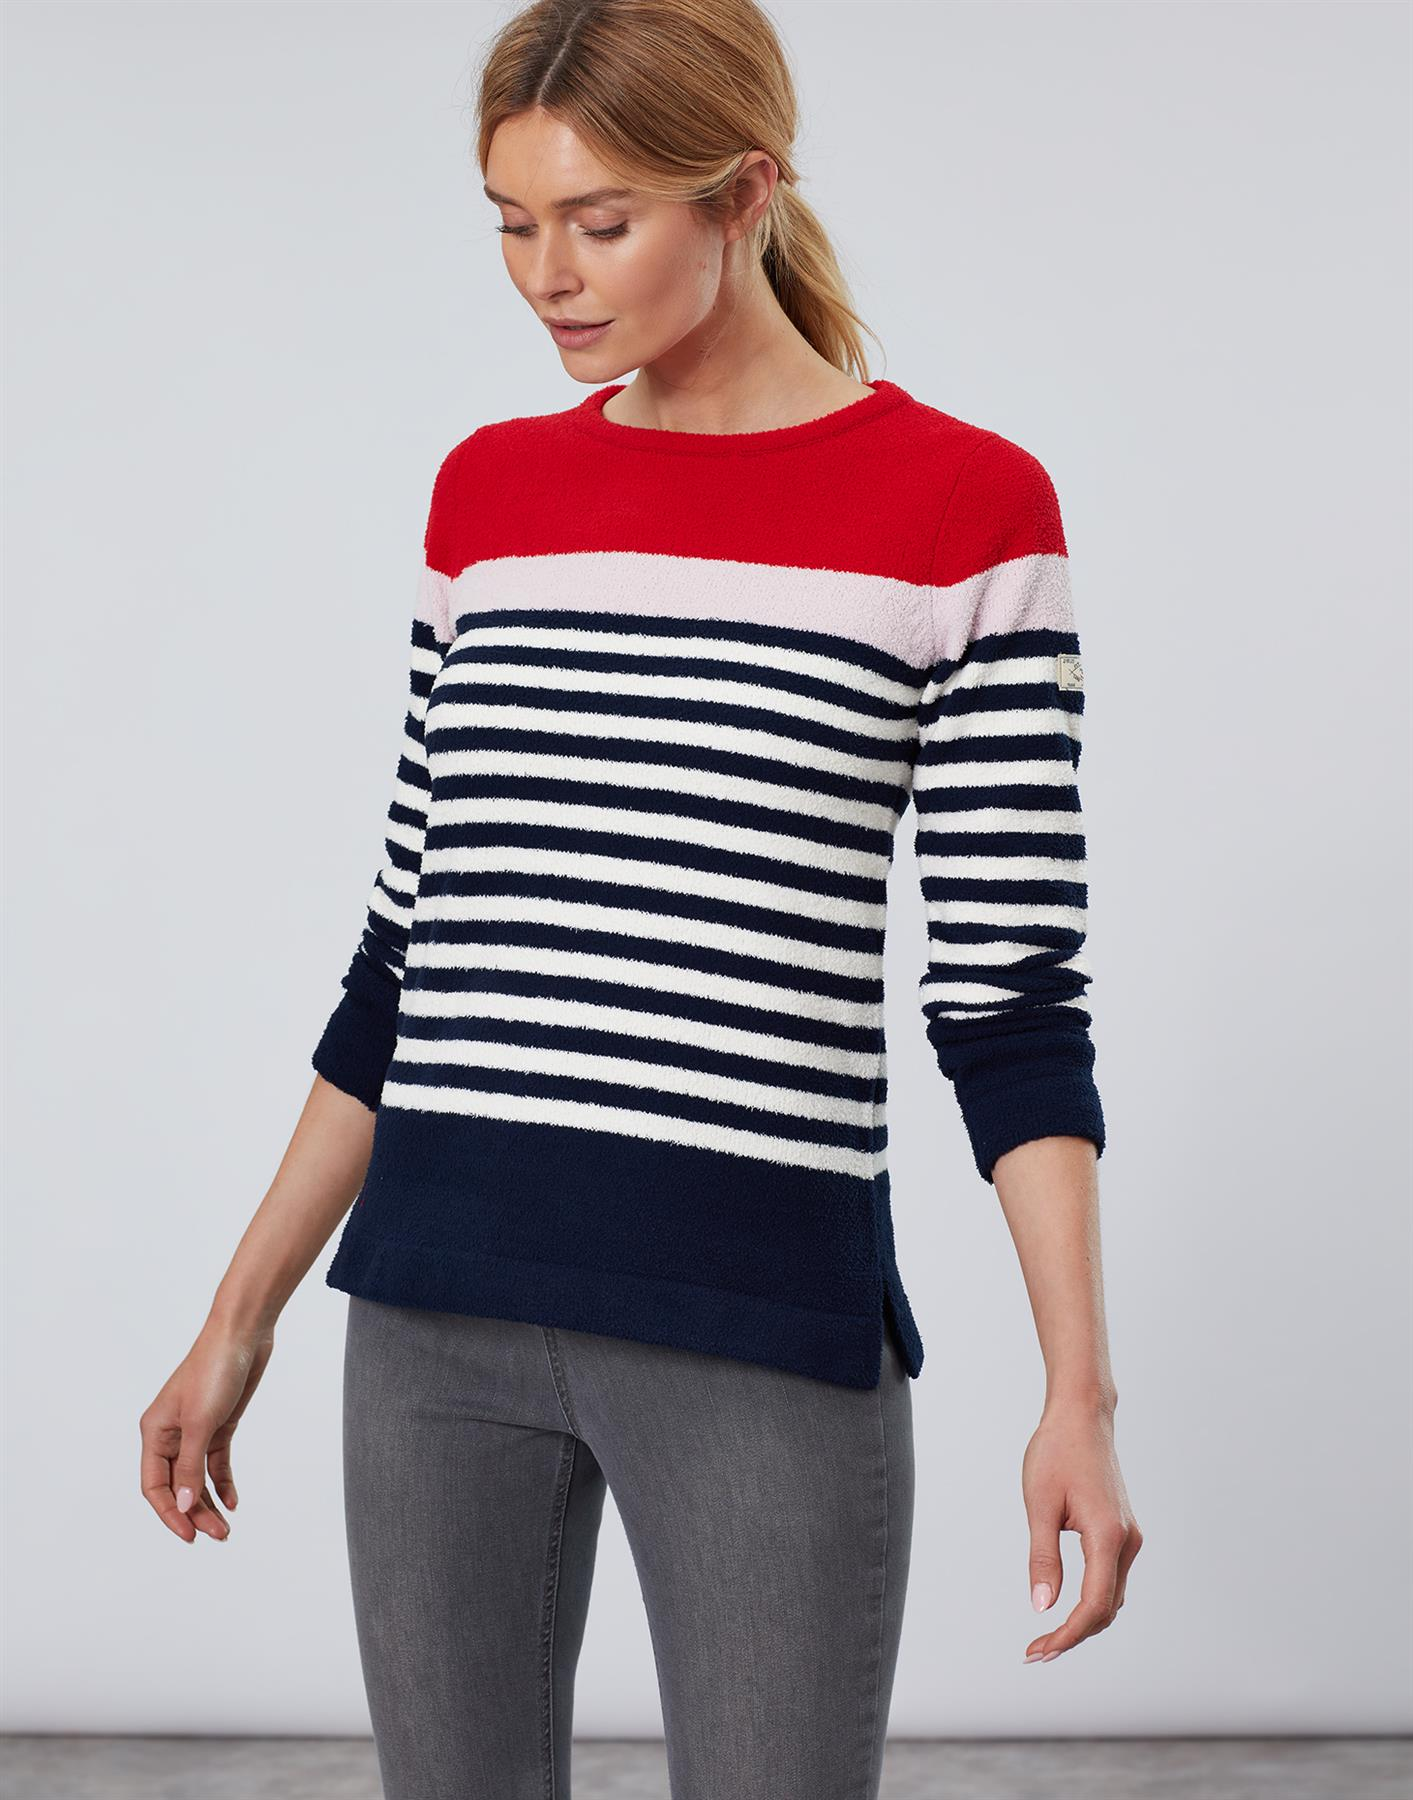 Jersey-De-Chenille-Joules-Para-Mujer-Seaham-Suave-AW19 miniatura 4